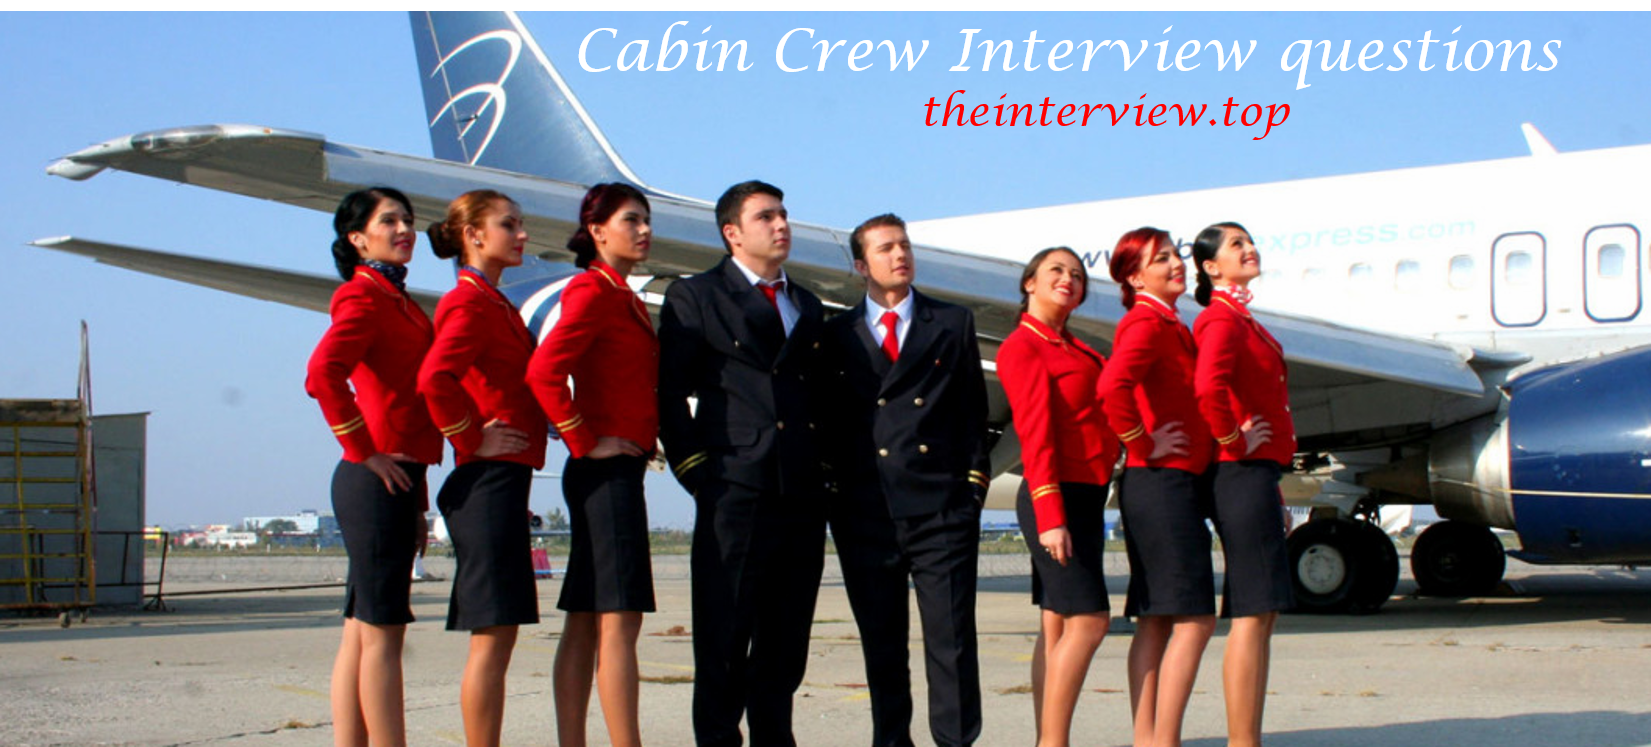 cabin crew interview questions and answers 2016 interview questions